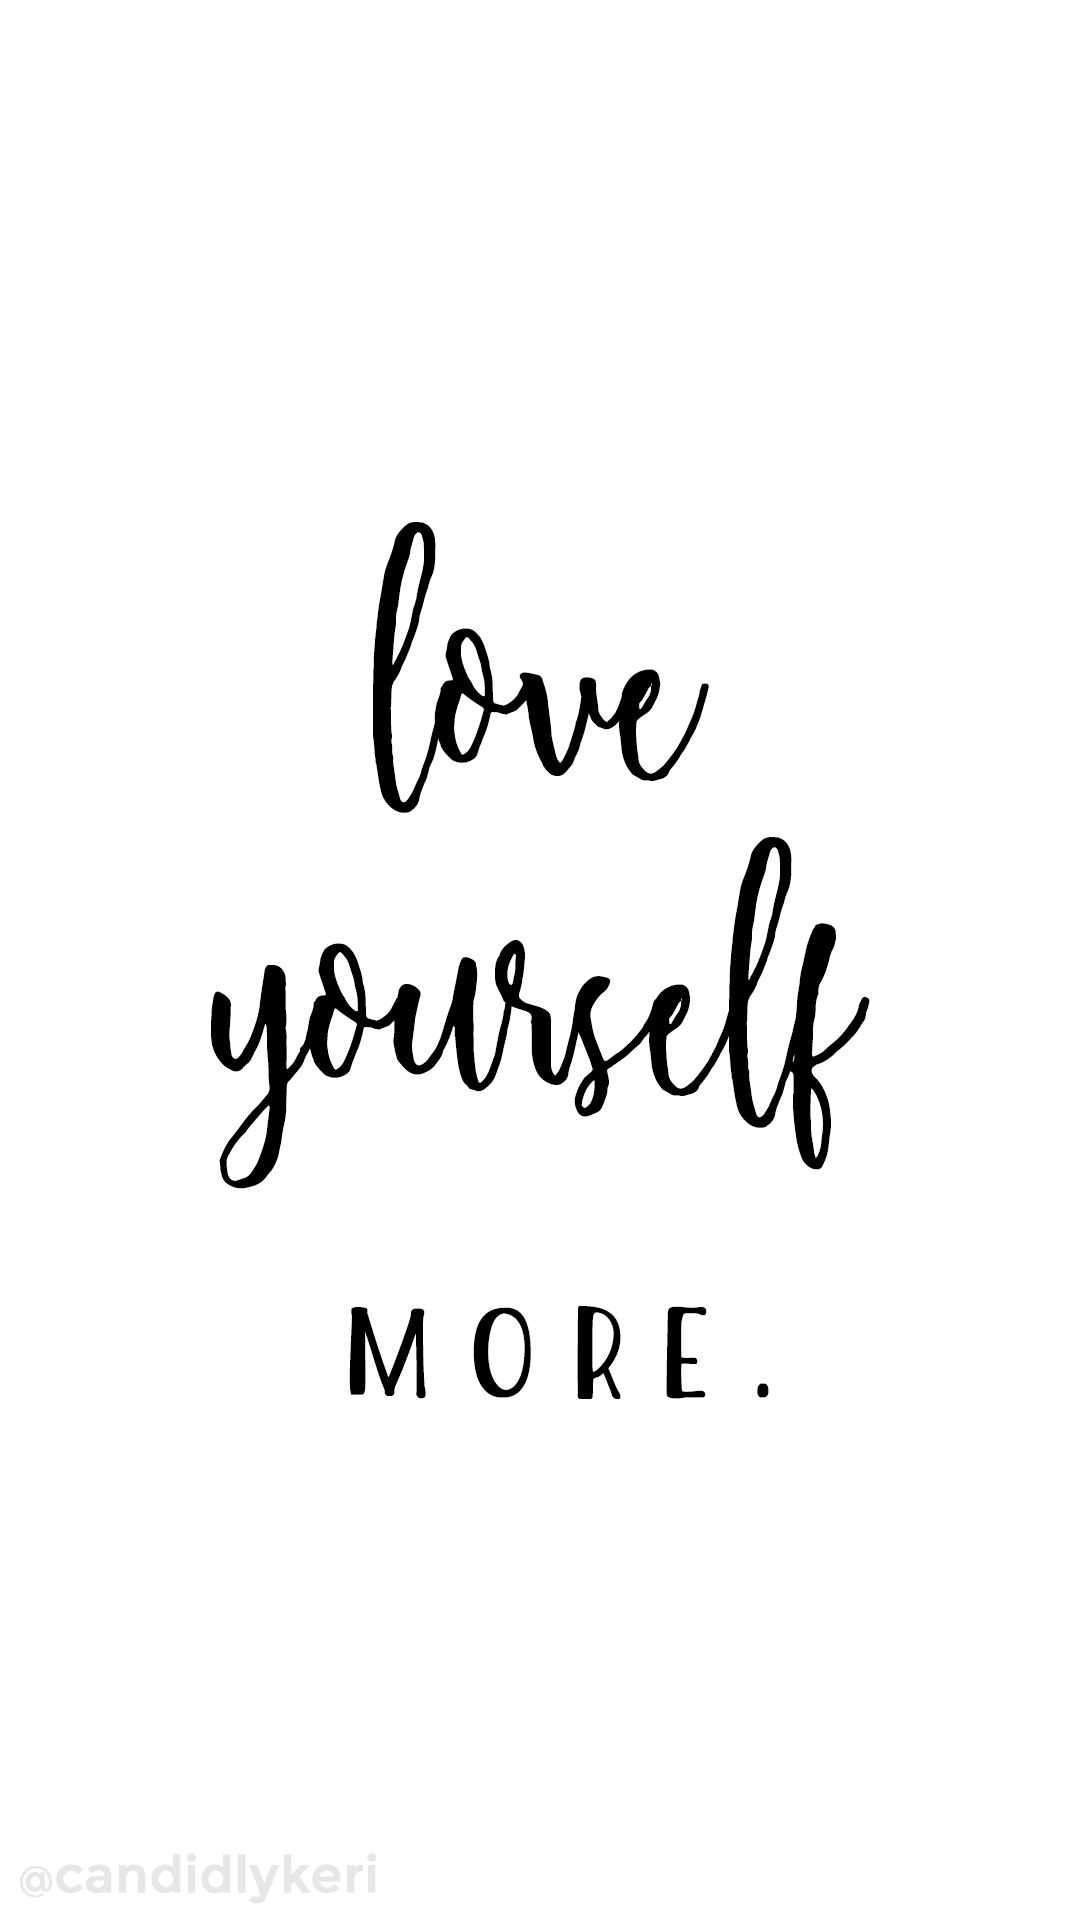 Love Yourself Wallpapers : Love Yourself More Quote inspirational self love wallpaper ...